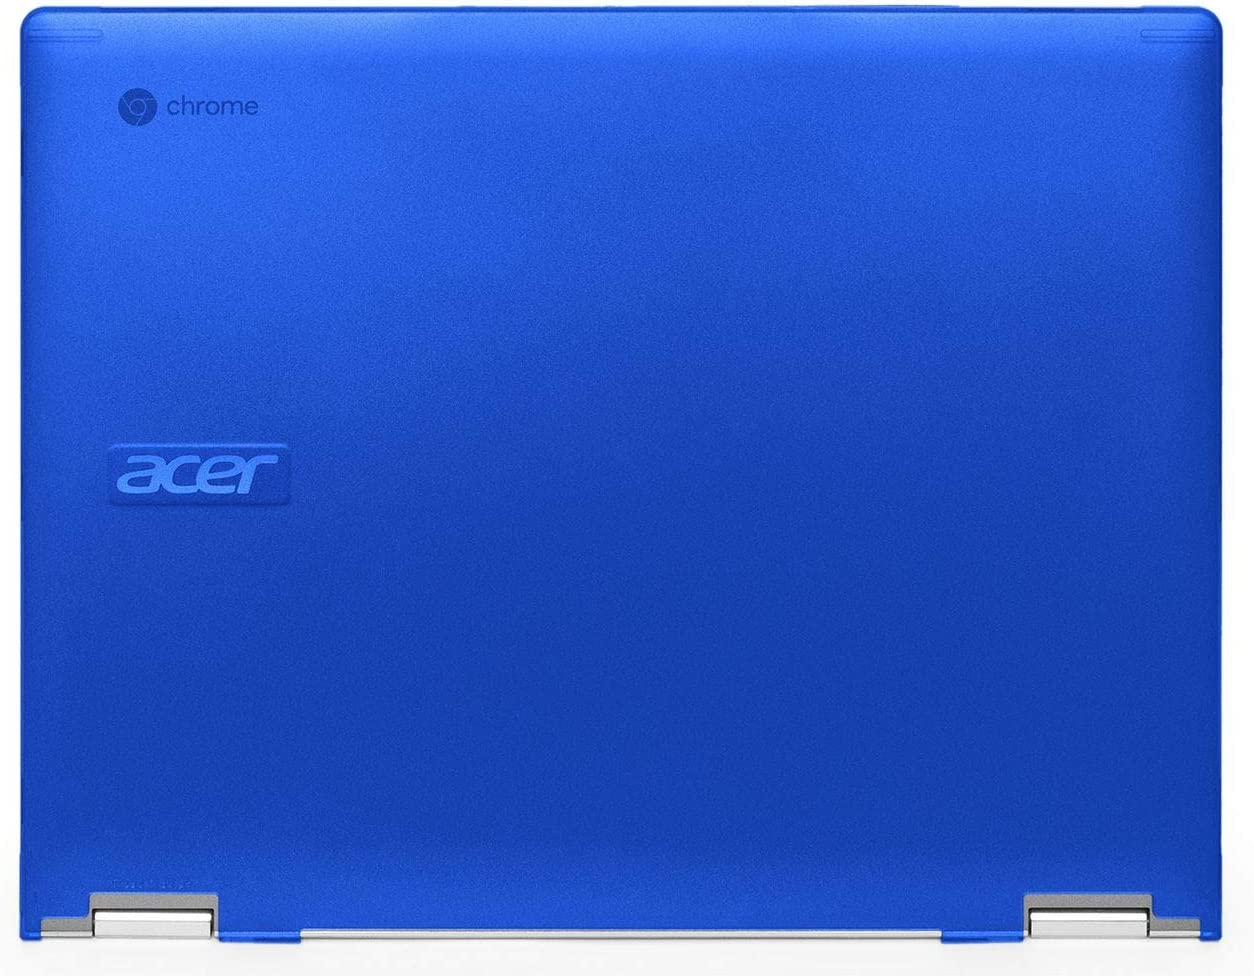 mCover Hard Shell Case for 2018/2019 Acer Chromebook Spin 13 CP713-1WN Series (NOT Compatible with All Other Acer Chromebooks) - AC-SP13-CP713-1WN-Blue